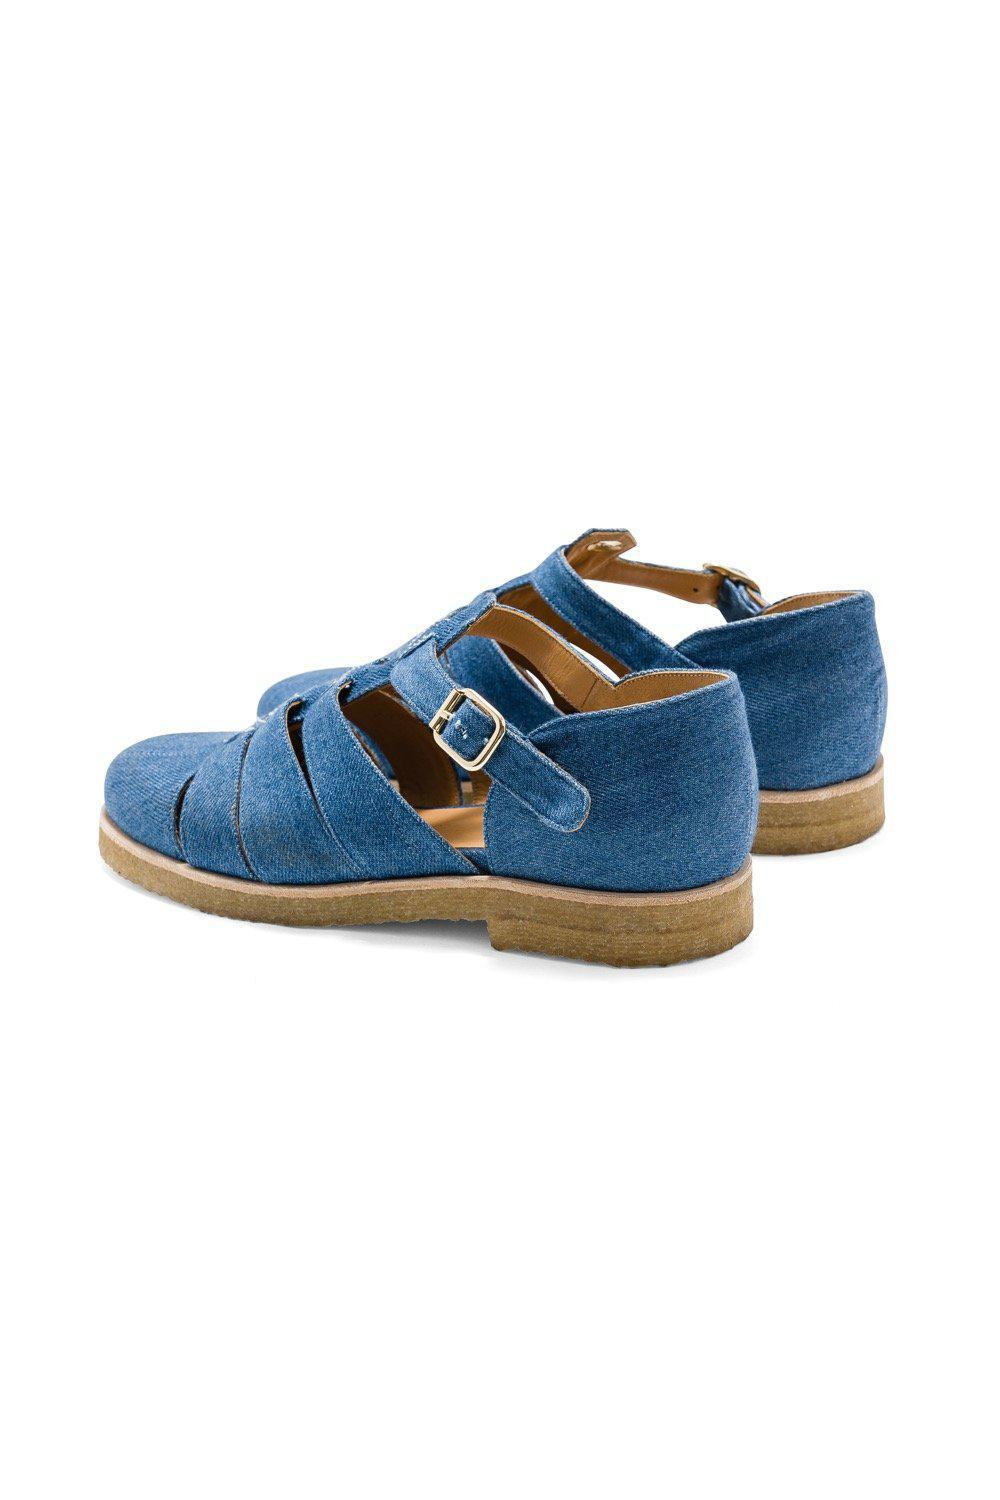 Ricky sandals in blue denim